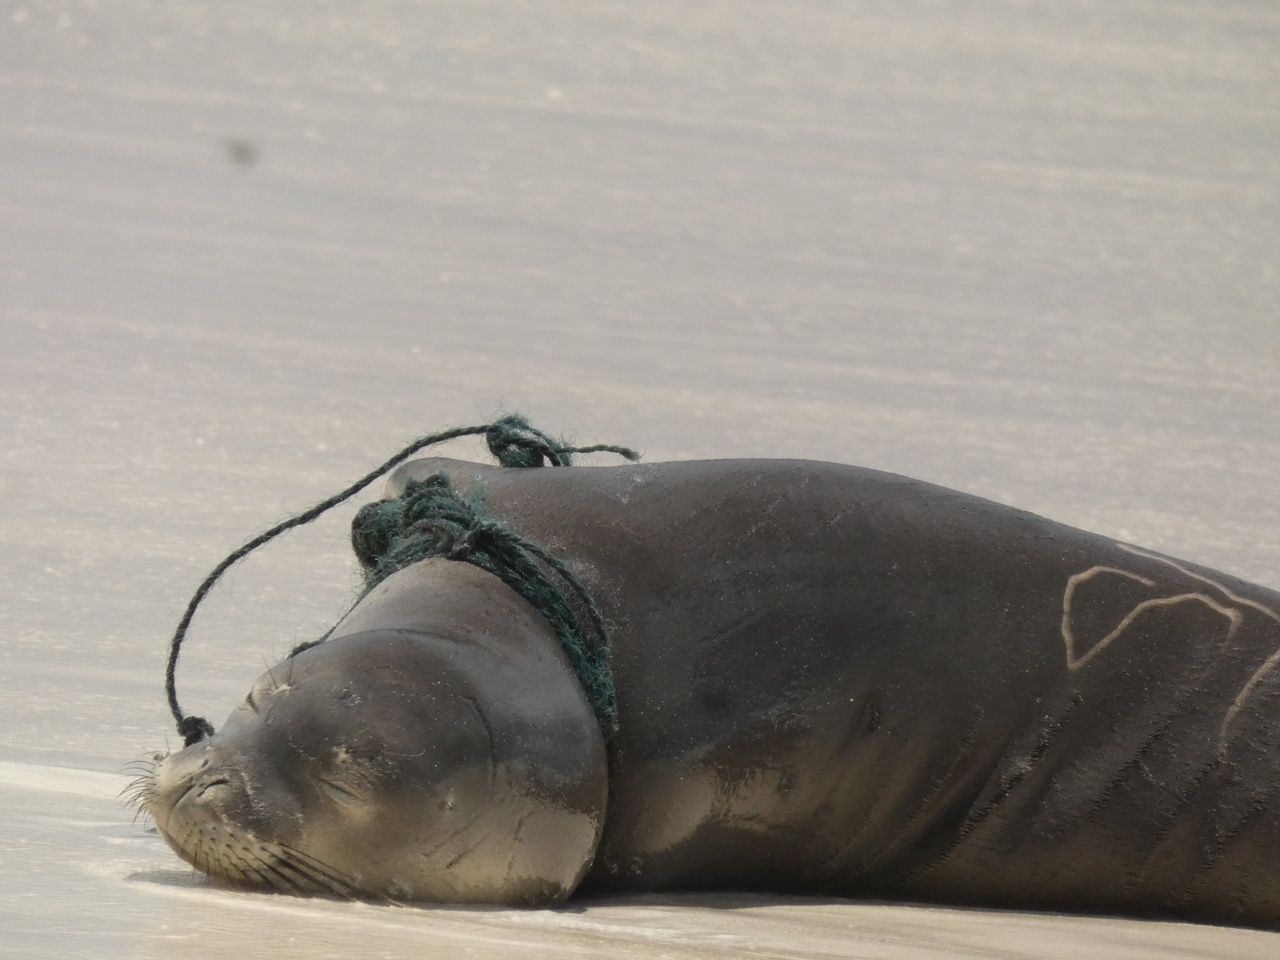 Seal with rope wrapped around neck.